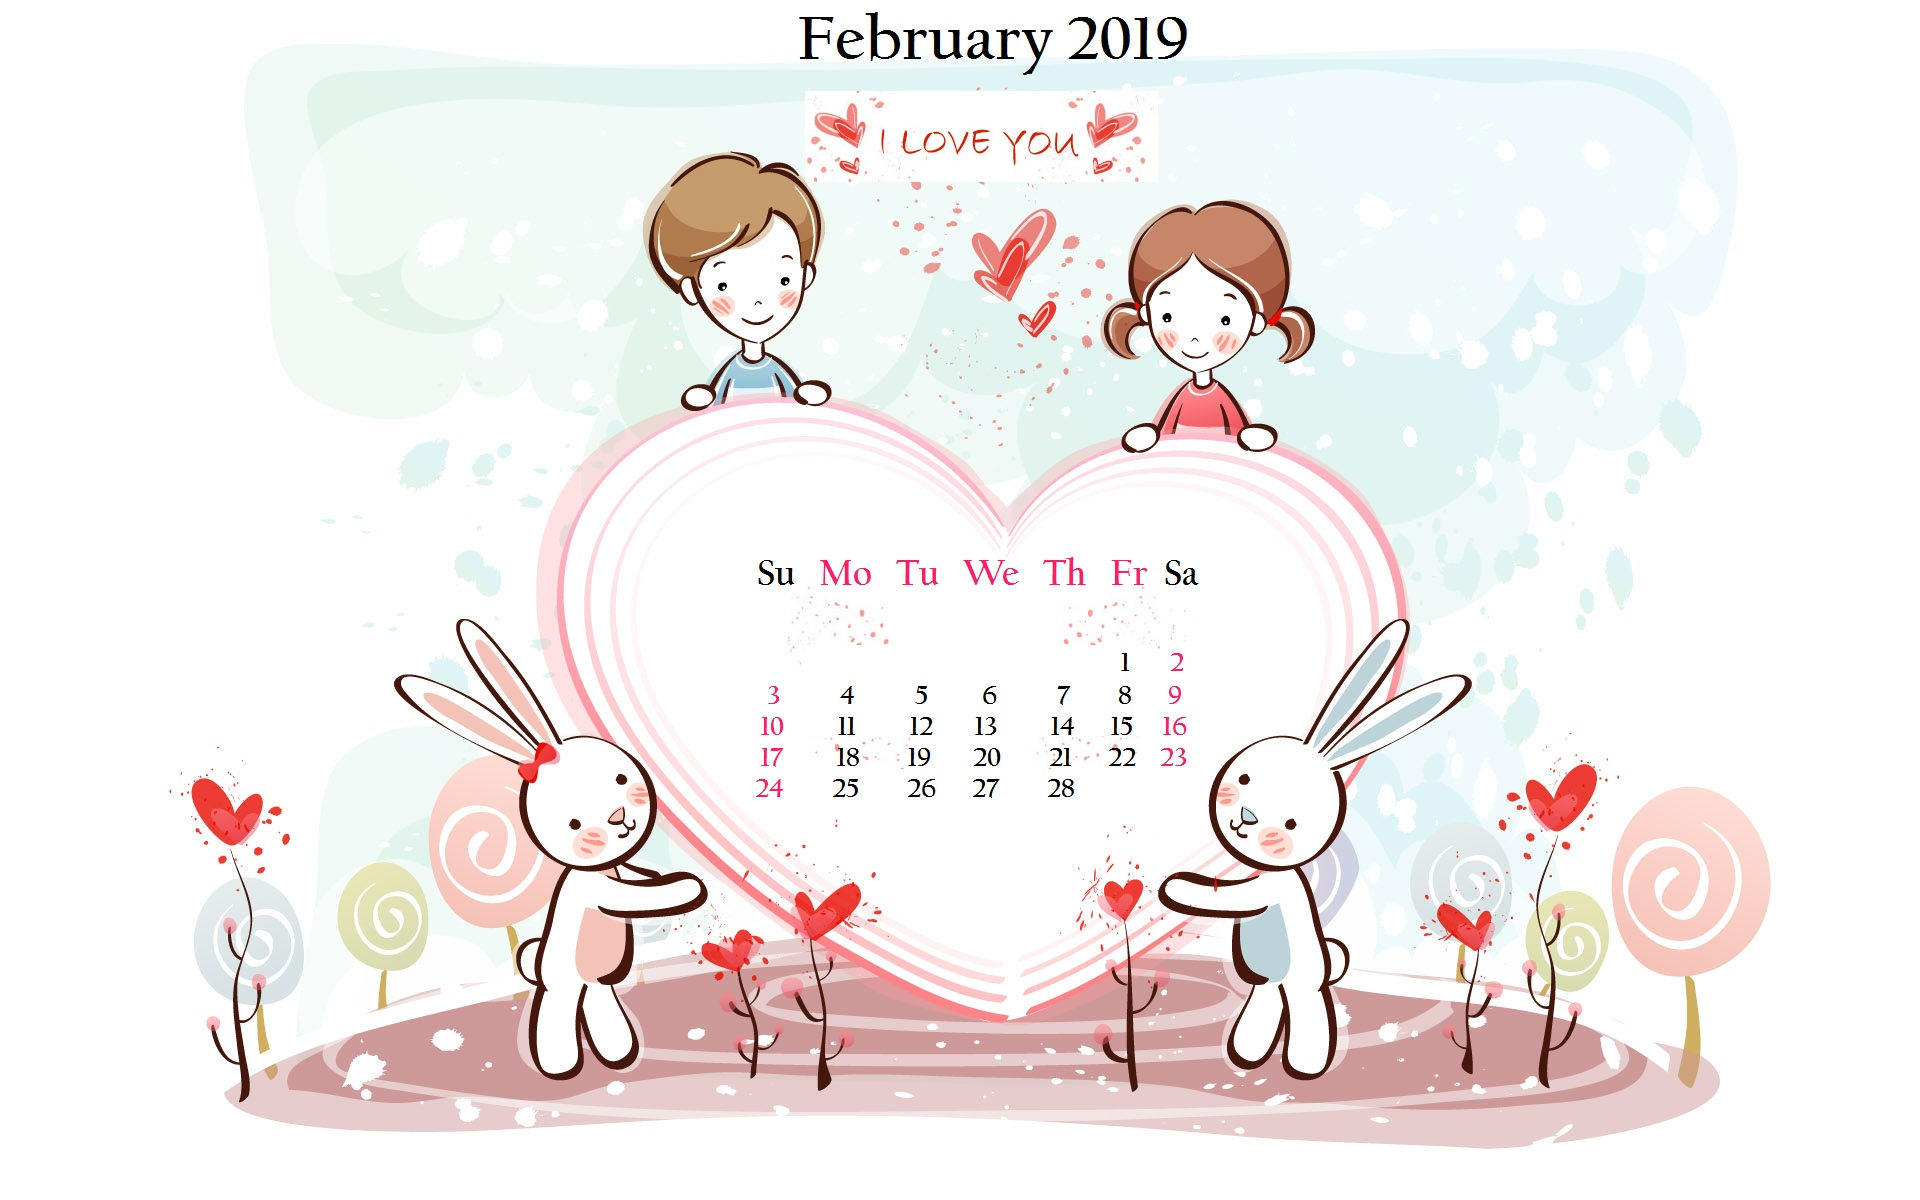 Cartoon Wallpaper February 2019 Desktop Calendar